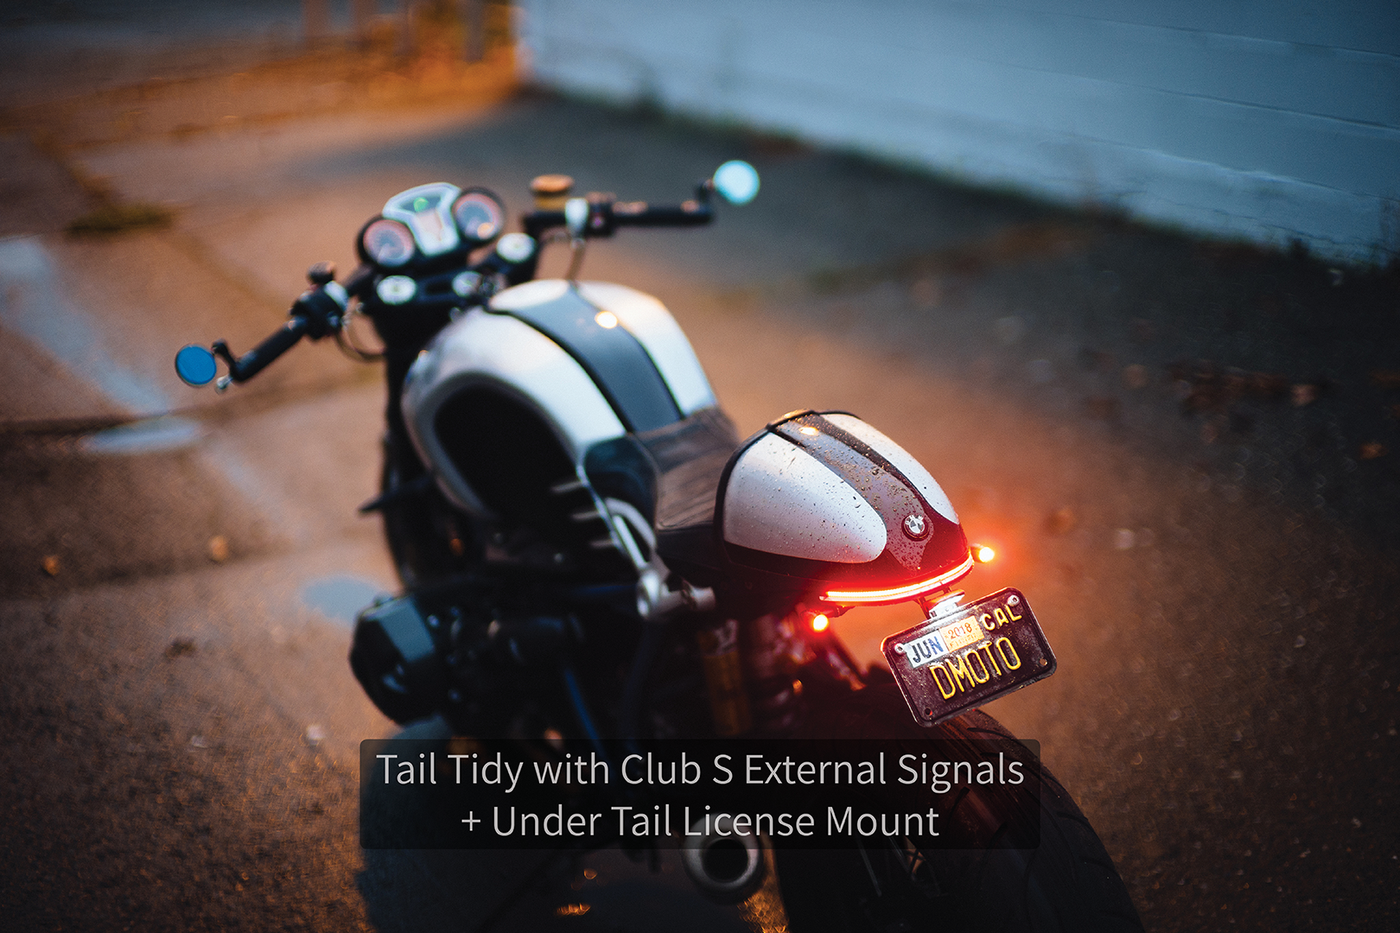 Daedalus Tail Tidy with Club S External Signals by Rizoma - BMW R nineT